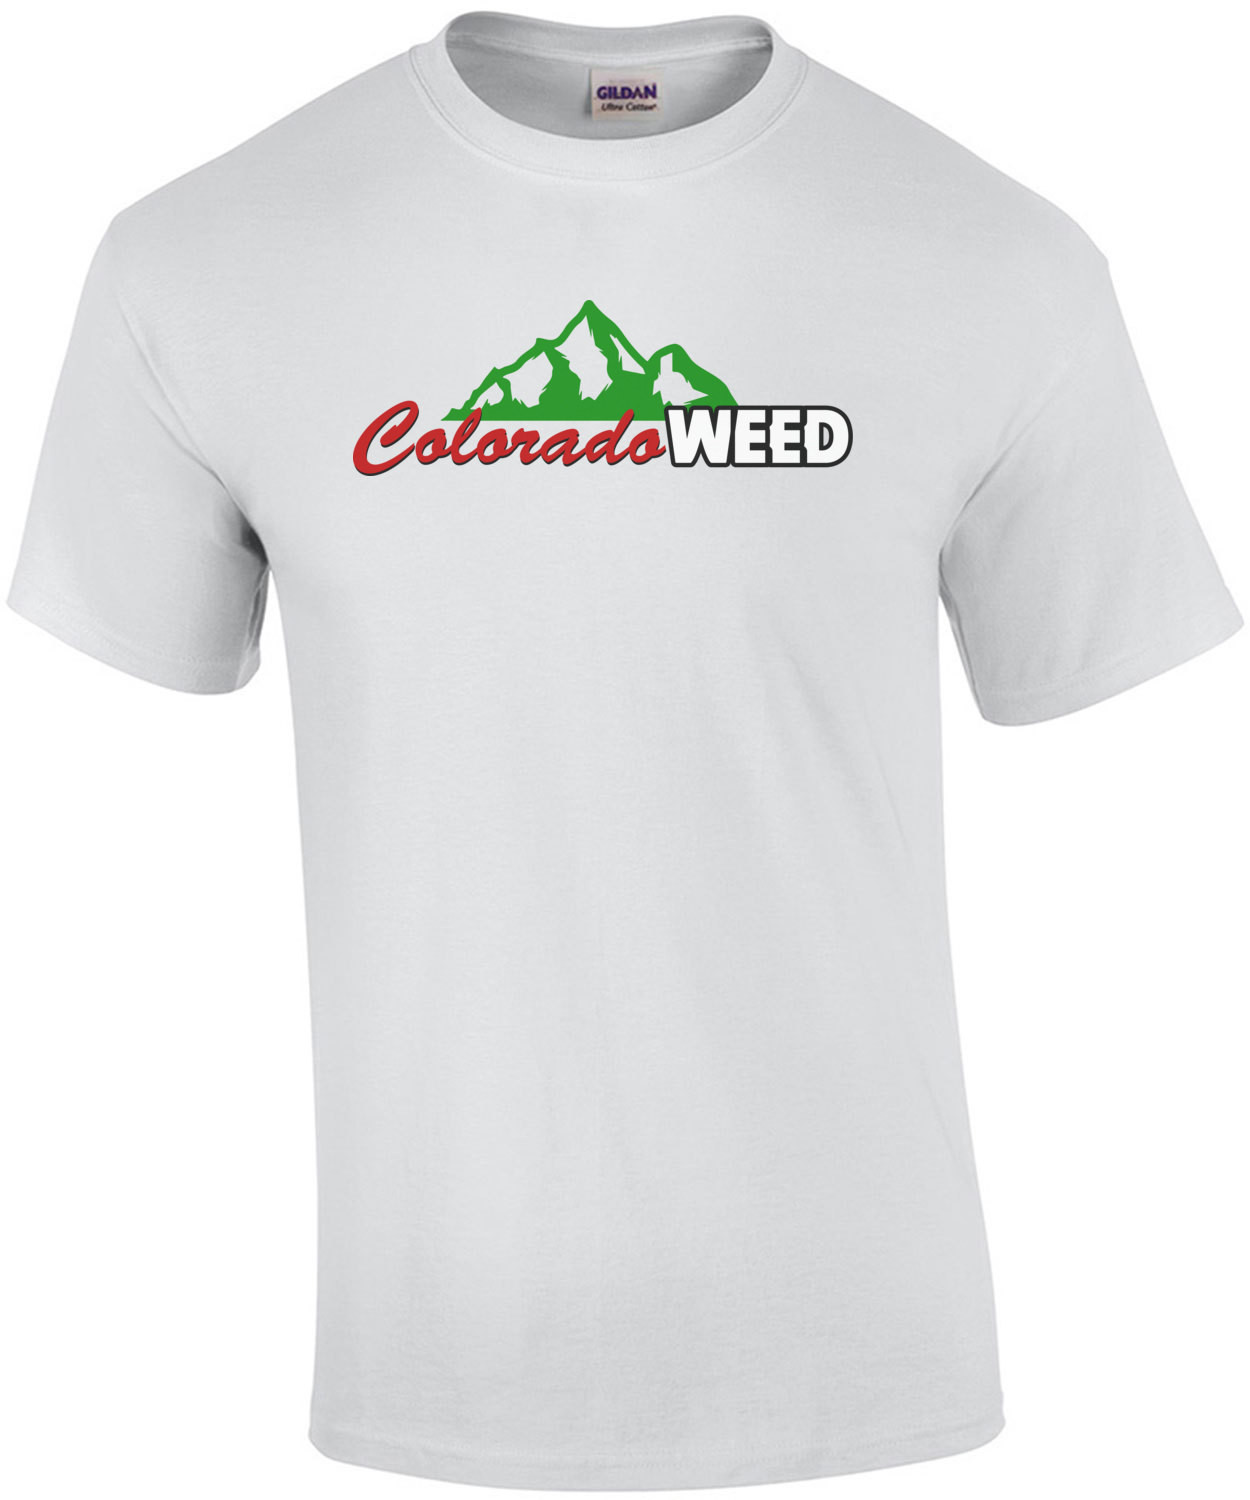 Colorado Weed - Colorado T-Shirt